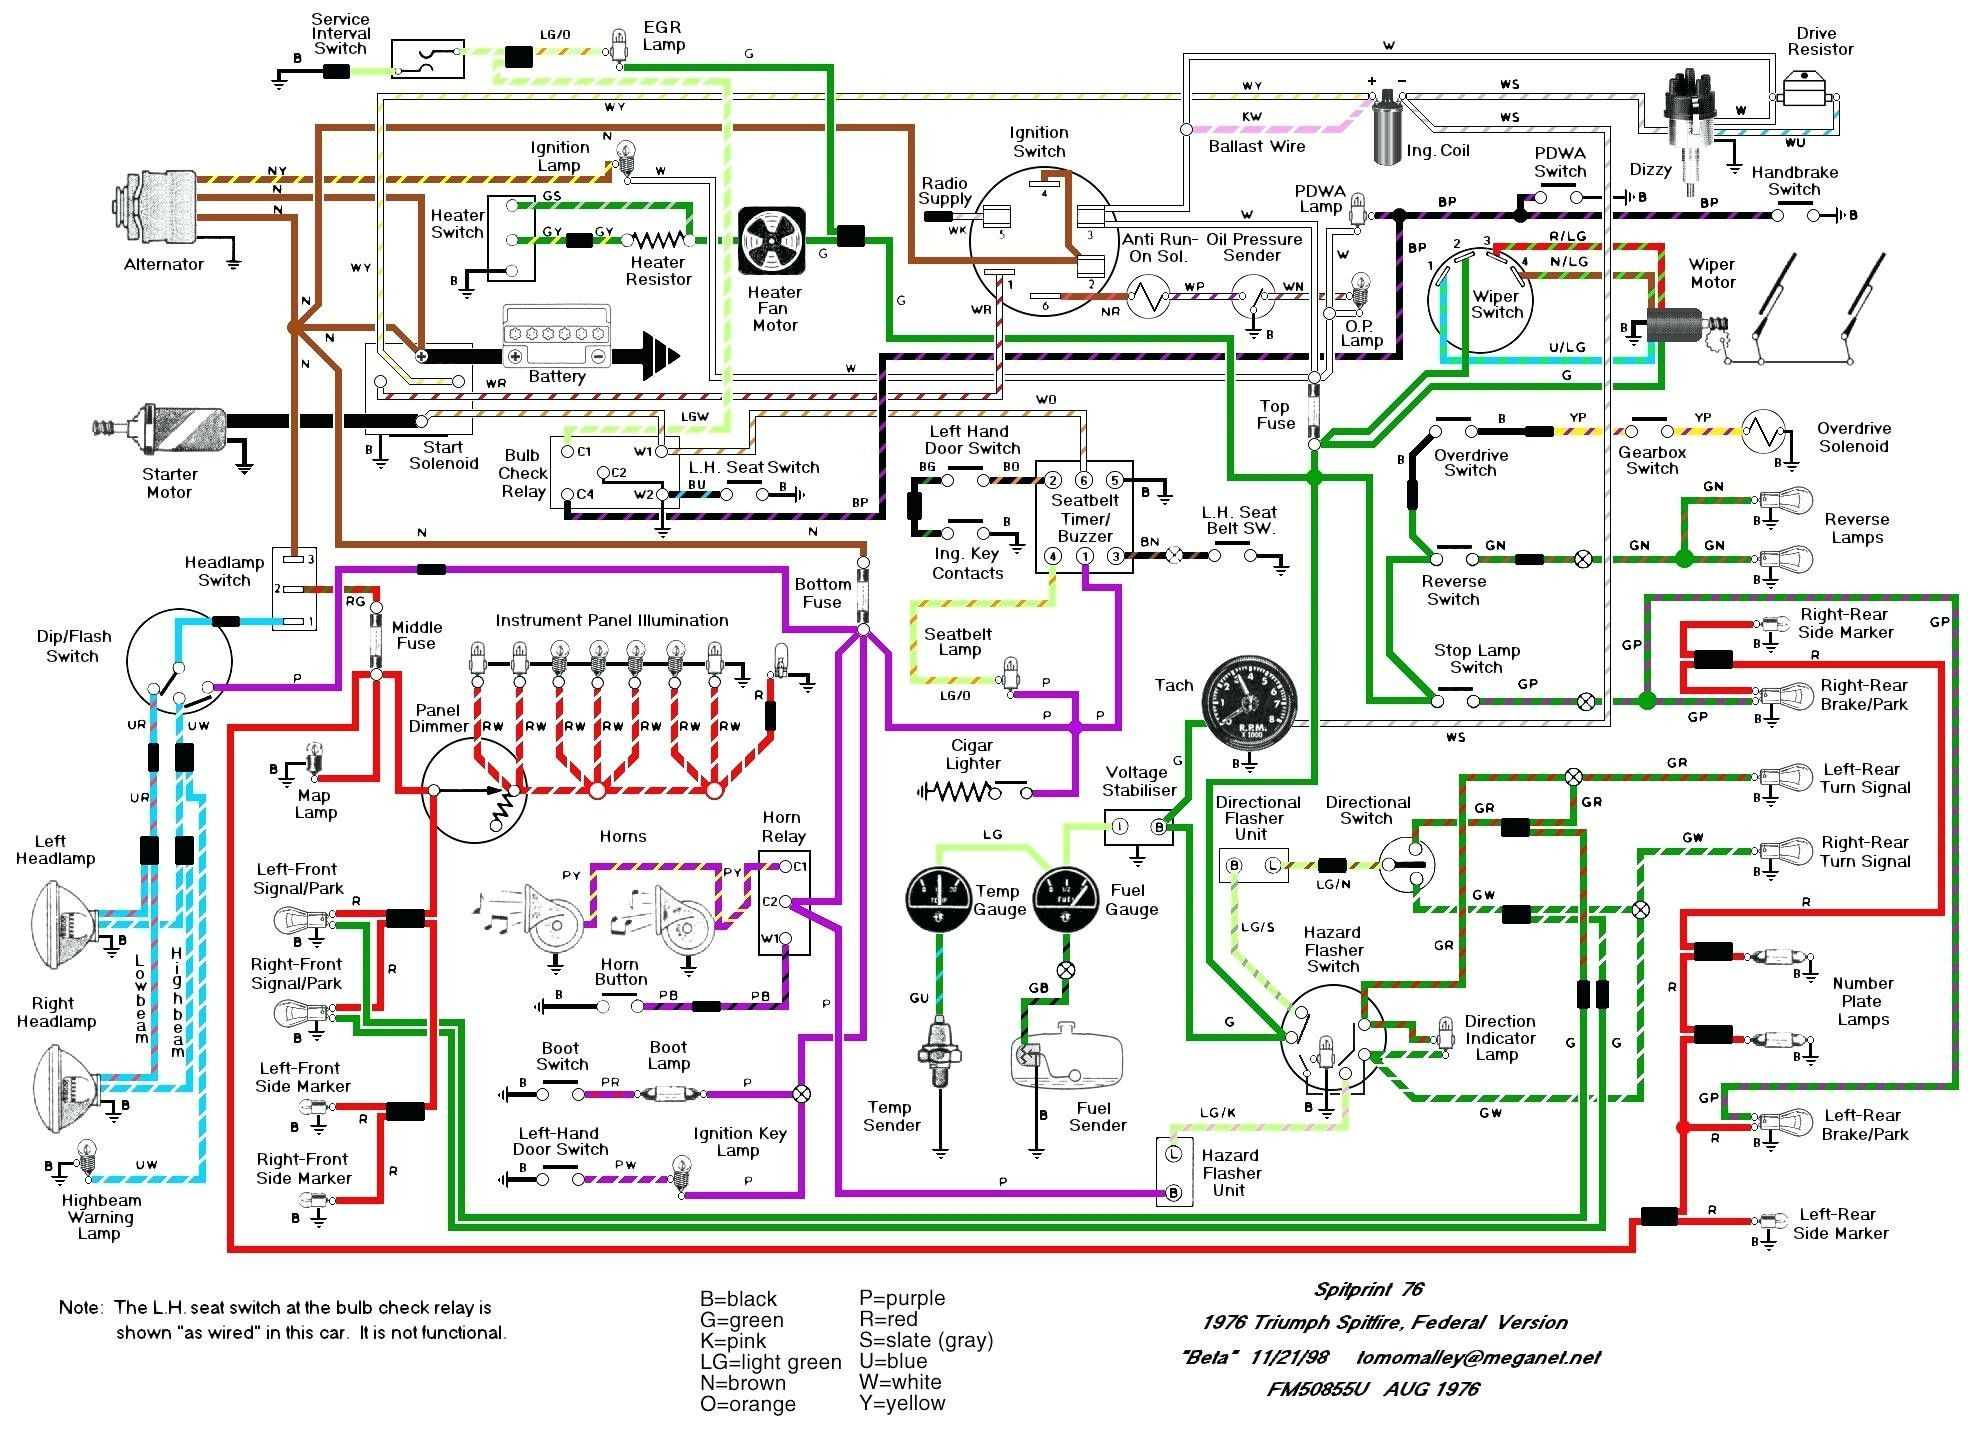 [DIAGRAM_3US]  23 Clever Electrical Wiring Diagram Software Open Source Design Ideas ,  https://bacamajalah.com… | Electrical circuit diagram, Electrical diagram, Electrical  wiring | Wiring Diagram Software Open Source |  | Pinterest